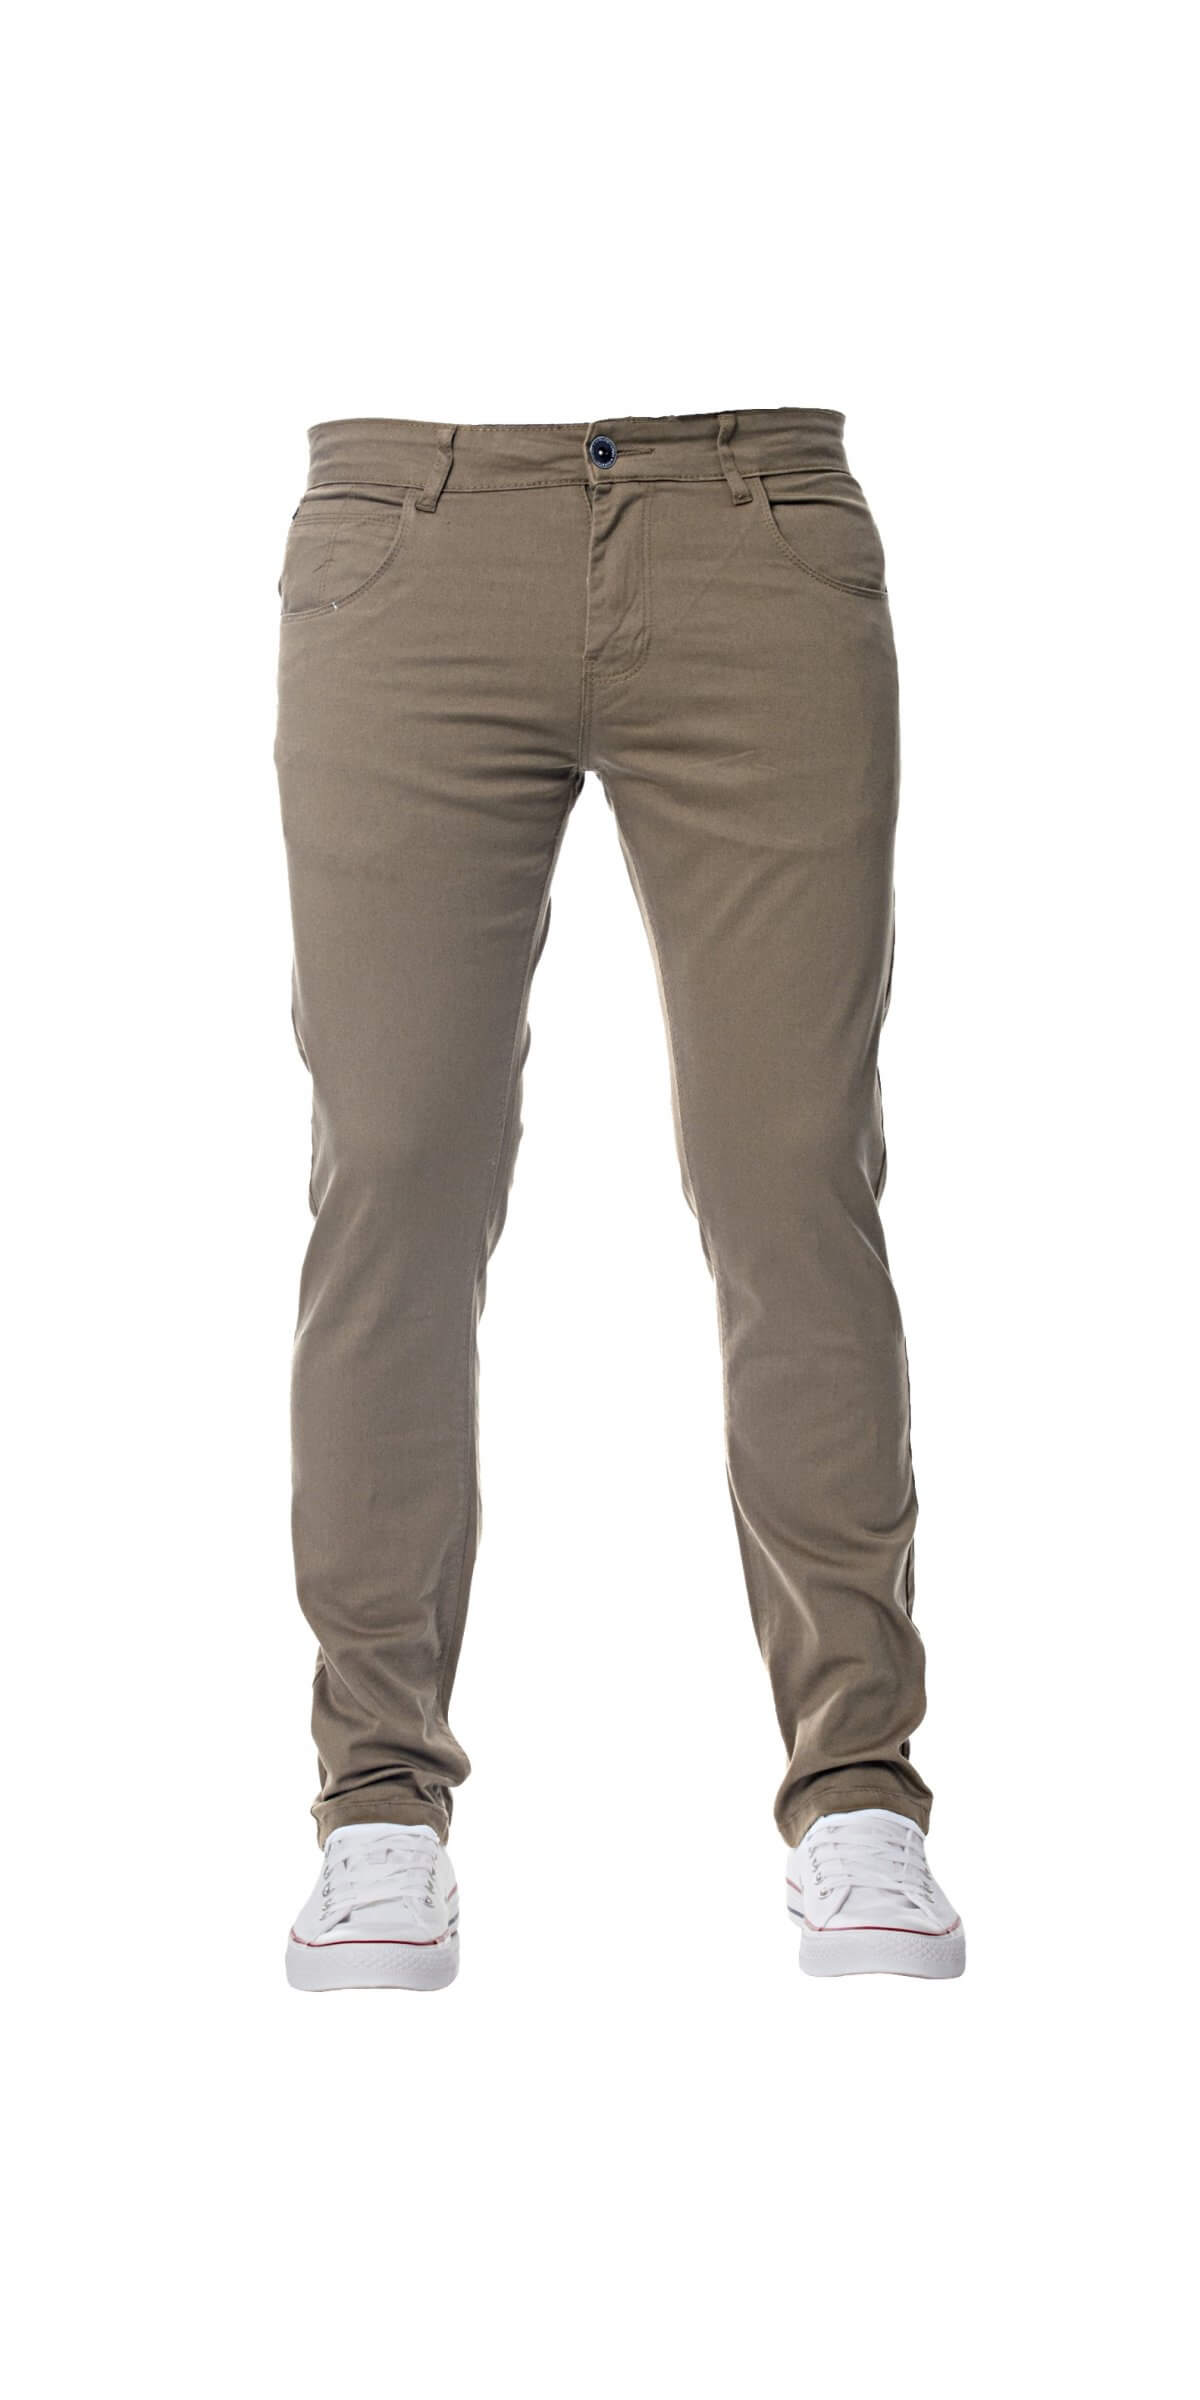 Kruze | Mens Slim Fit Stretch Chinos Available In 8 Colours | Kruze Designer Menswear